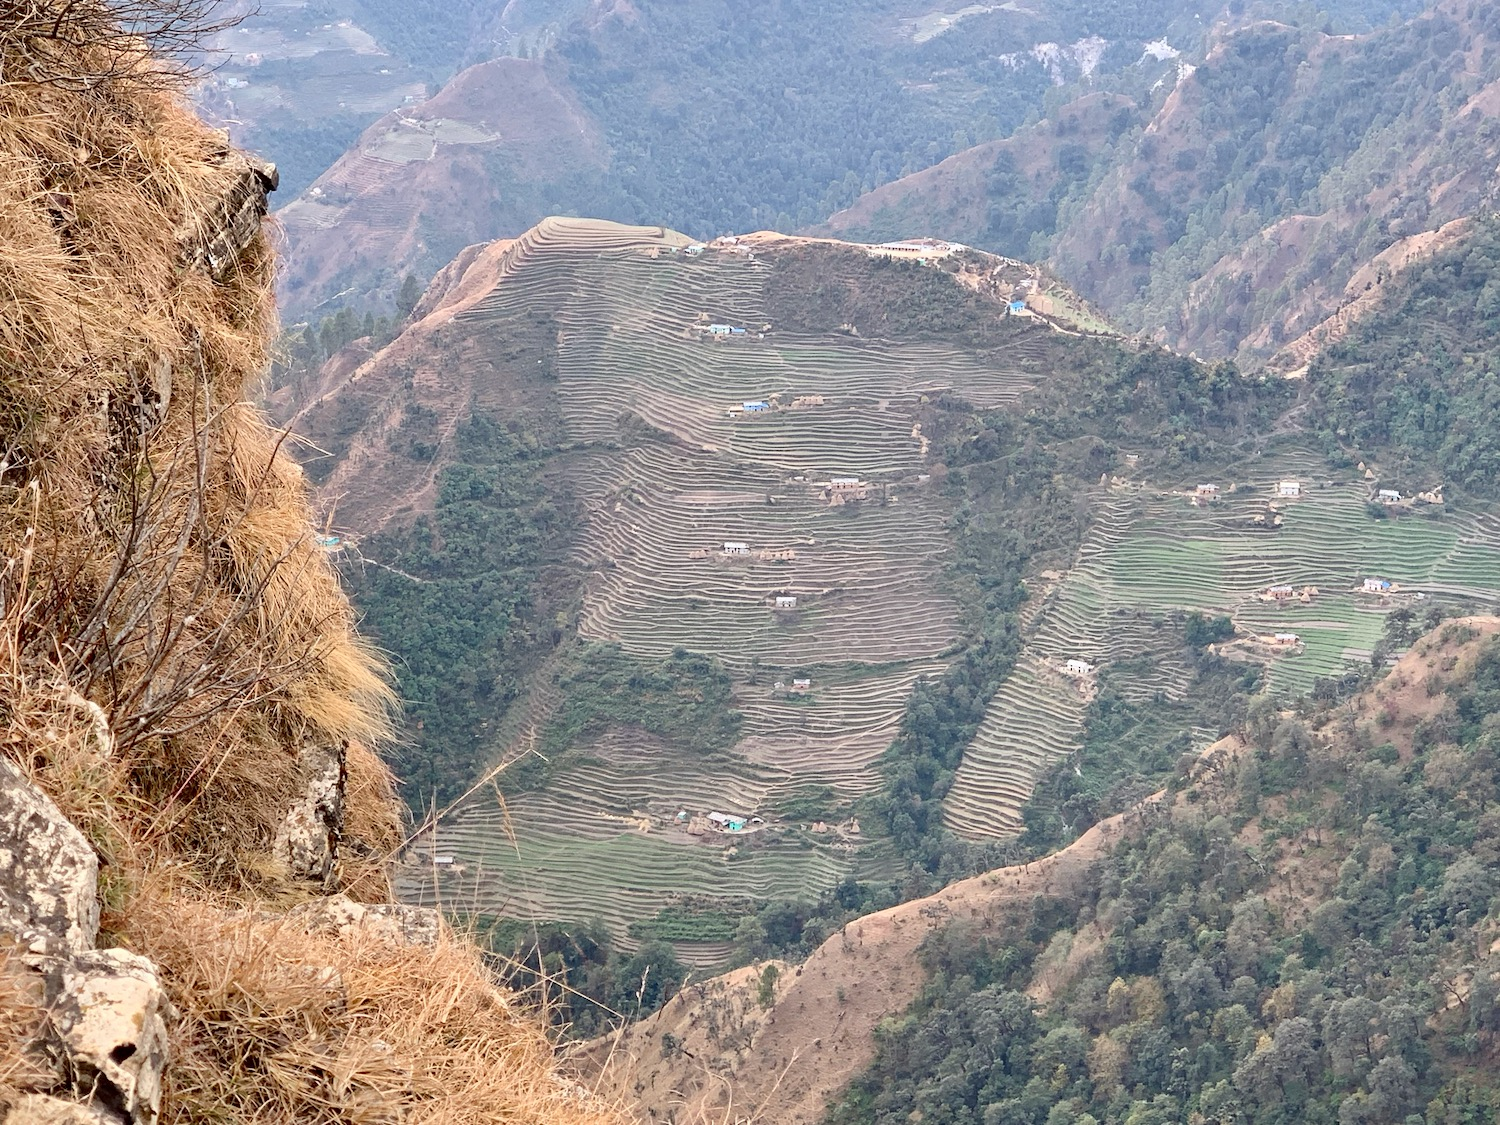 We distributed the Word of God to the houses on these terraces some years ago.